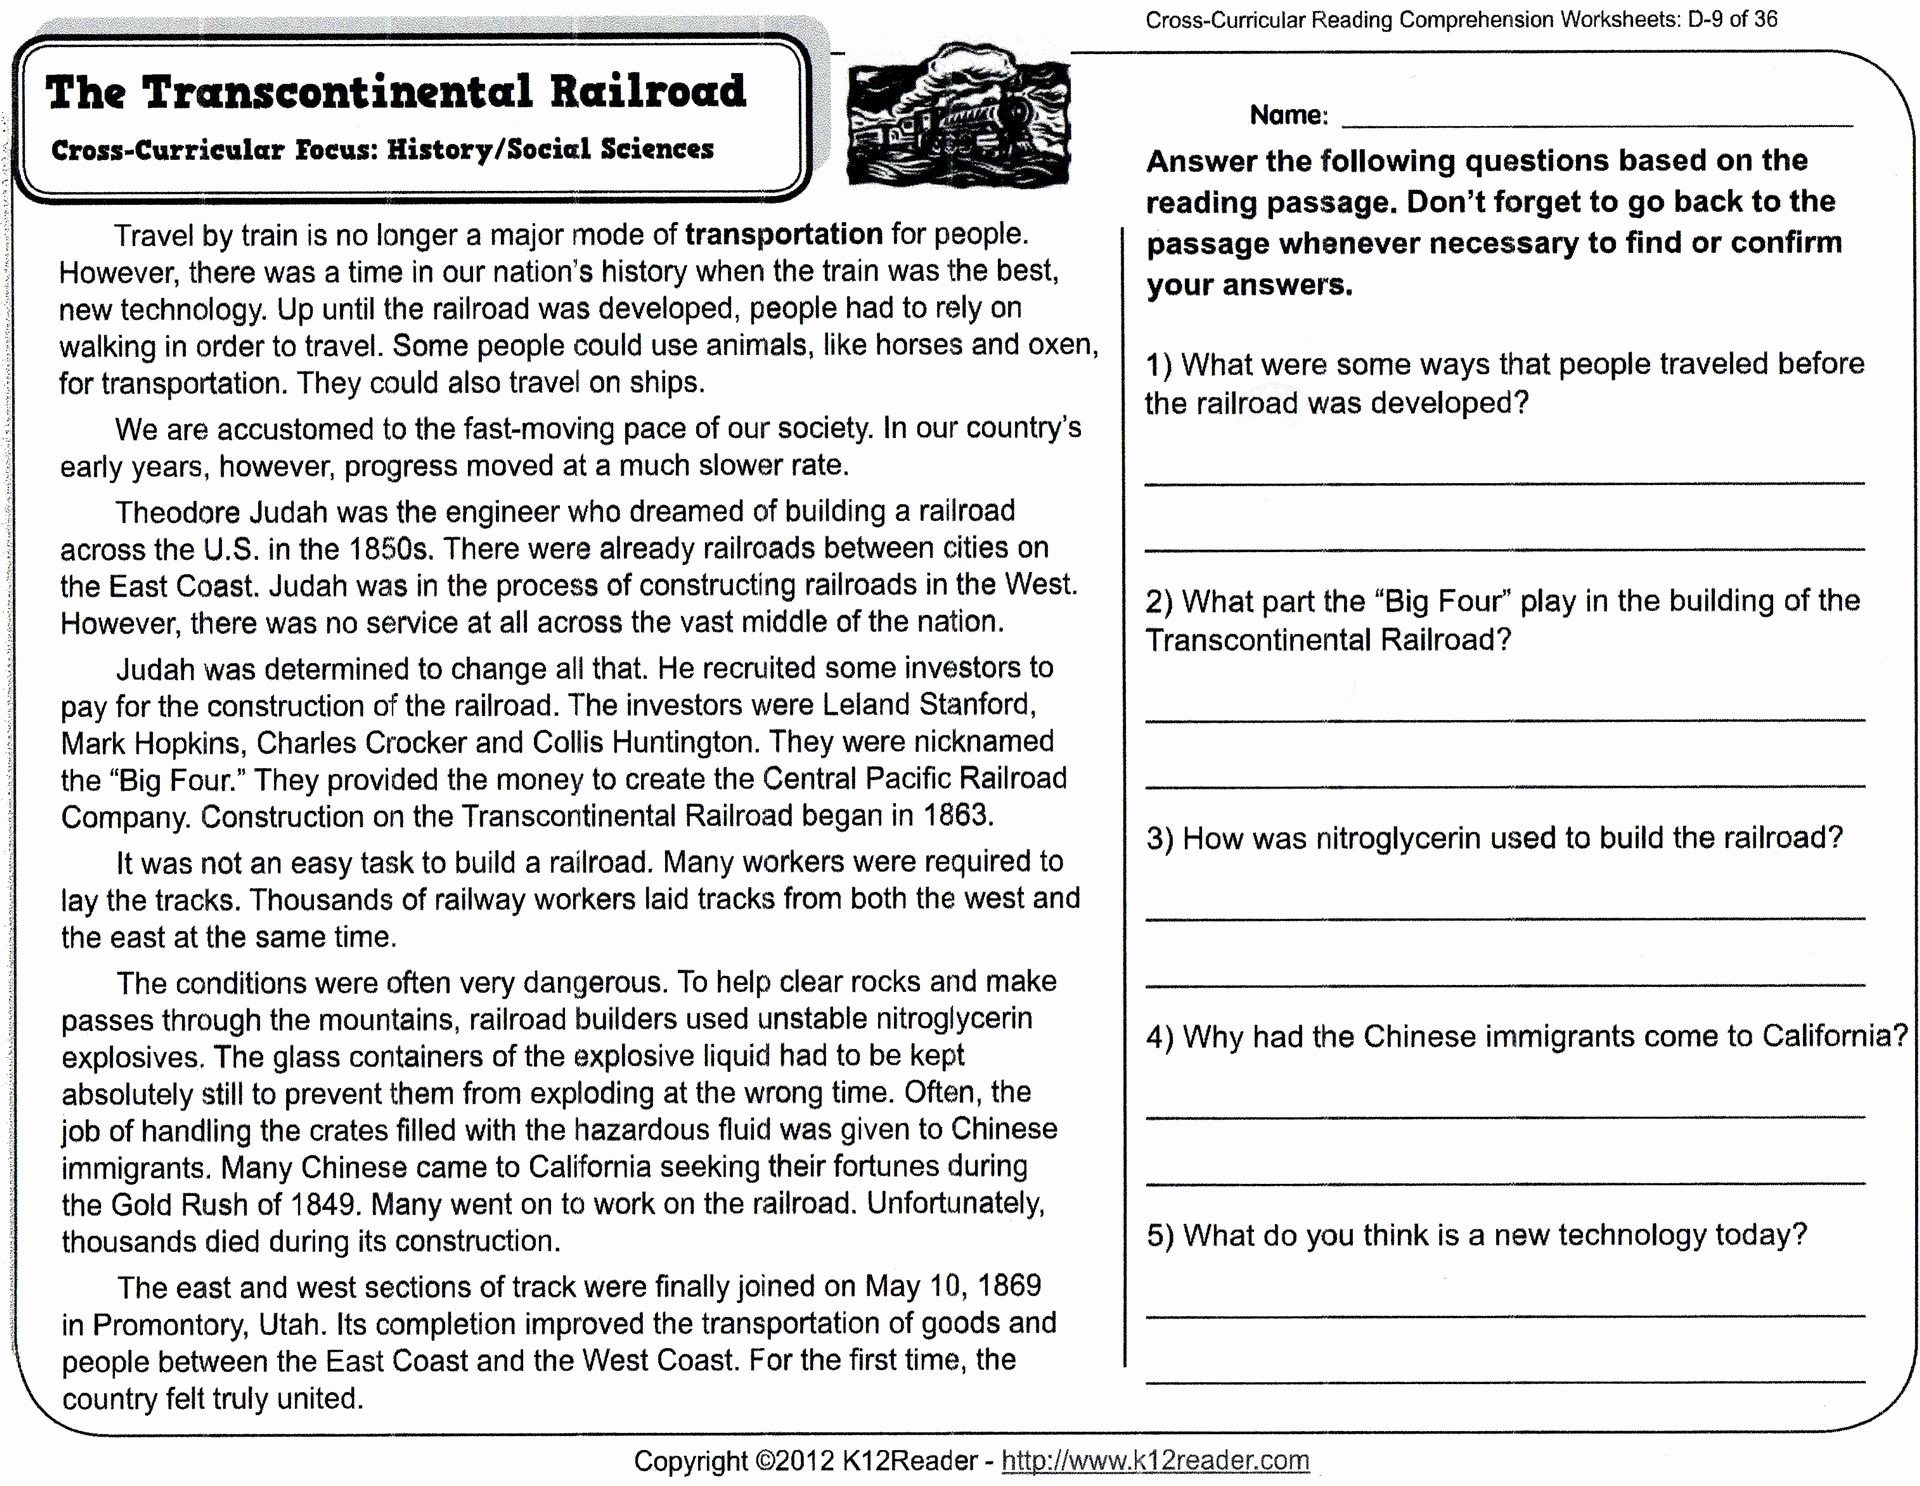 Reading Comprehension Worksheets For 8Th Grade Free Report ...